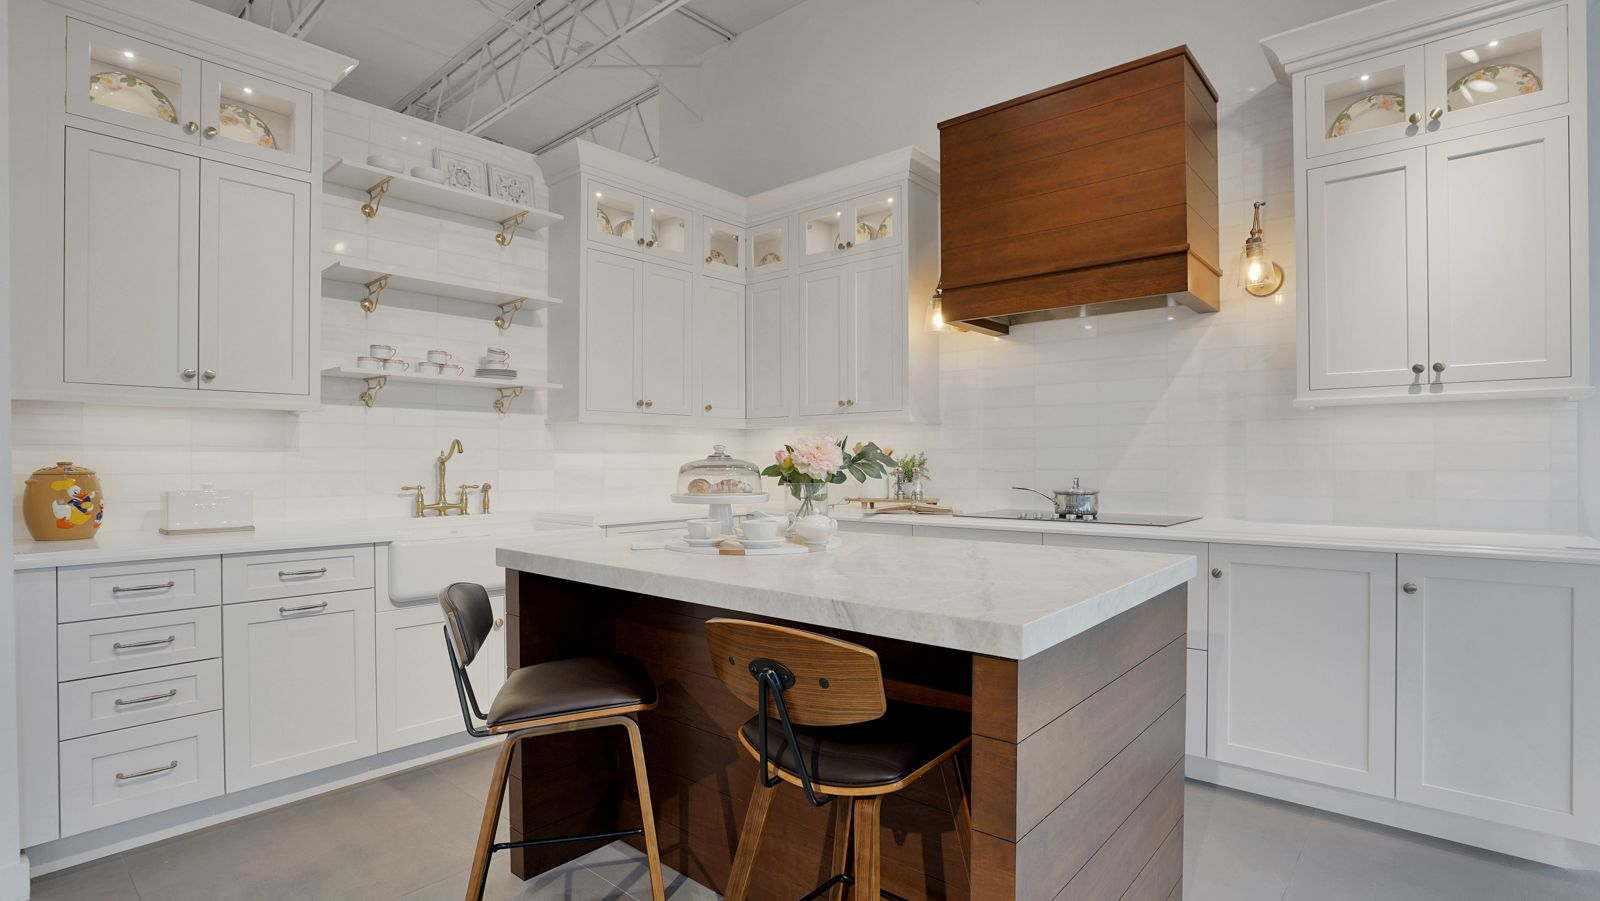 Kitchen Cabinet Design for Clients in Key Largo, Coral Gables, Palmetto Bay, Miami, Kendall, and Pinecrest